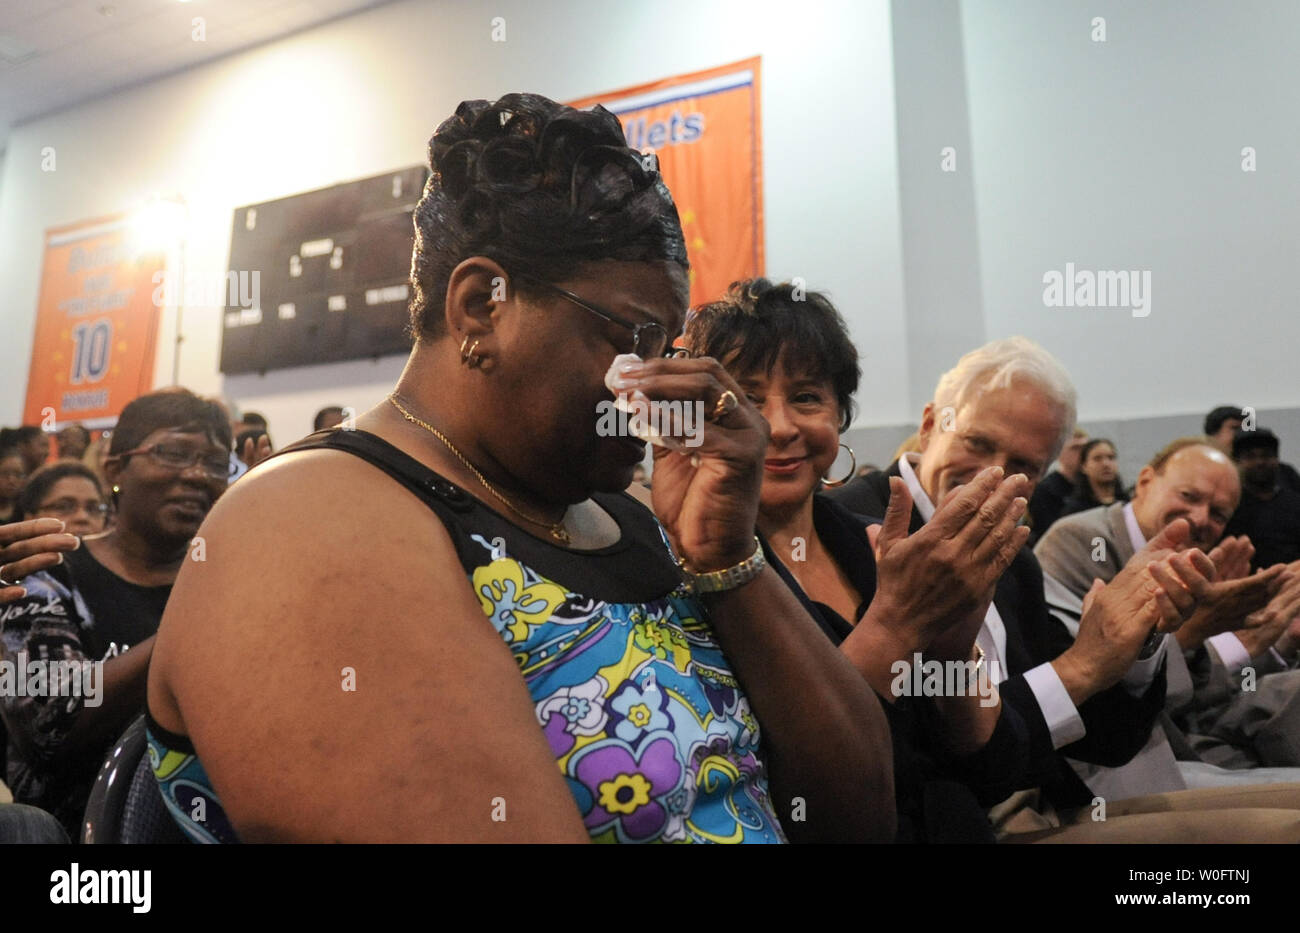 Frances Pulley (L), mother of John Wall, the NBA #1 draft pick by the Washington Wizards, wipes tears as guests applaud her at a press conference at the Verizon Center in Washington on June 25, 2010. UPI/Alexis C. Glenn Stock Photo